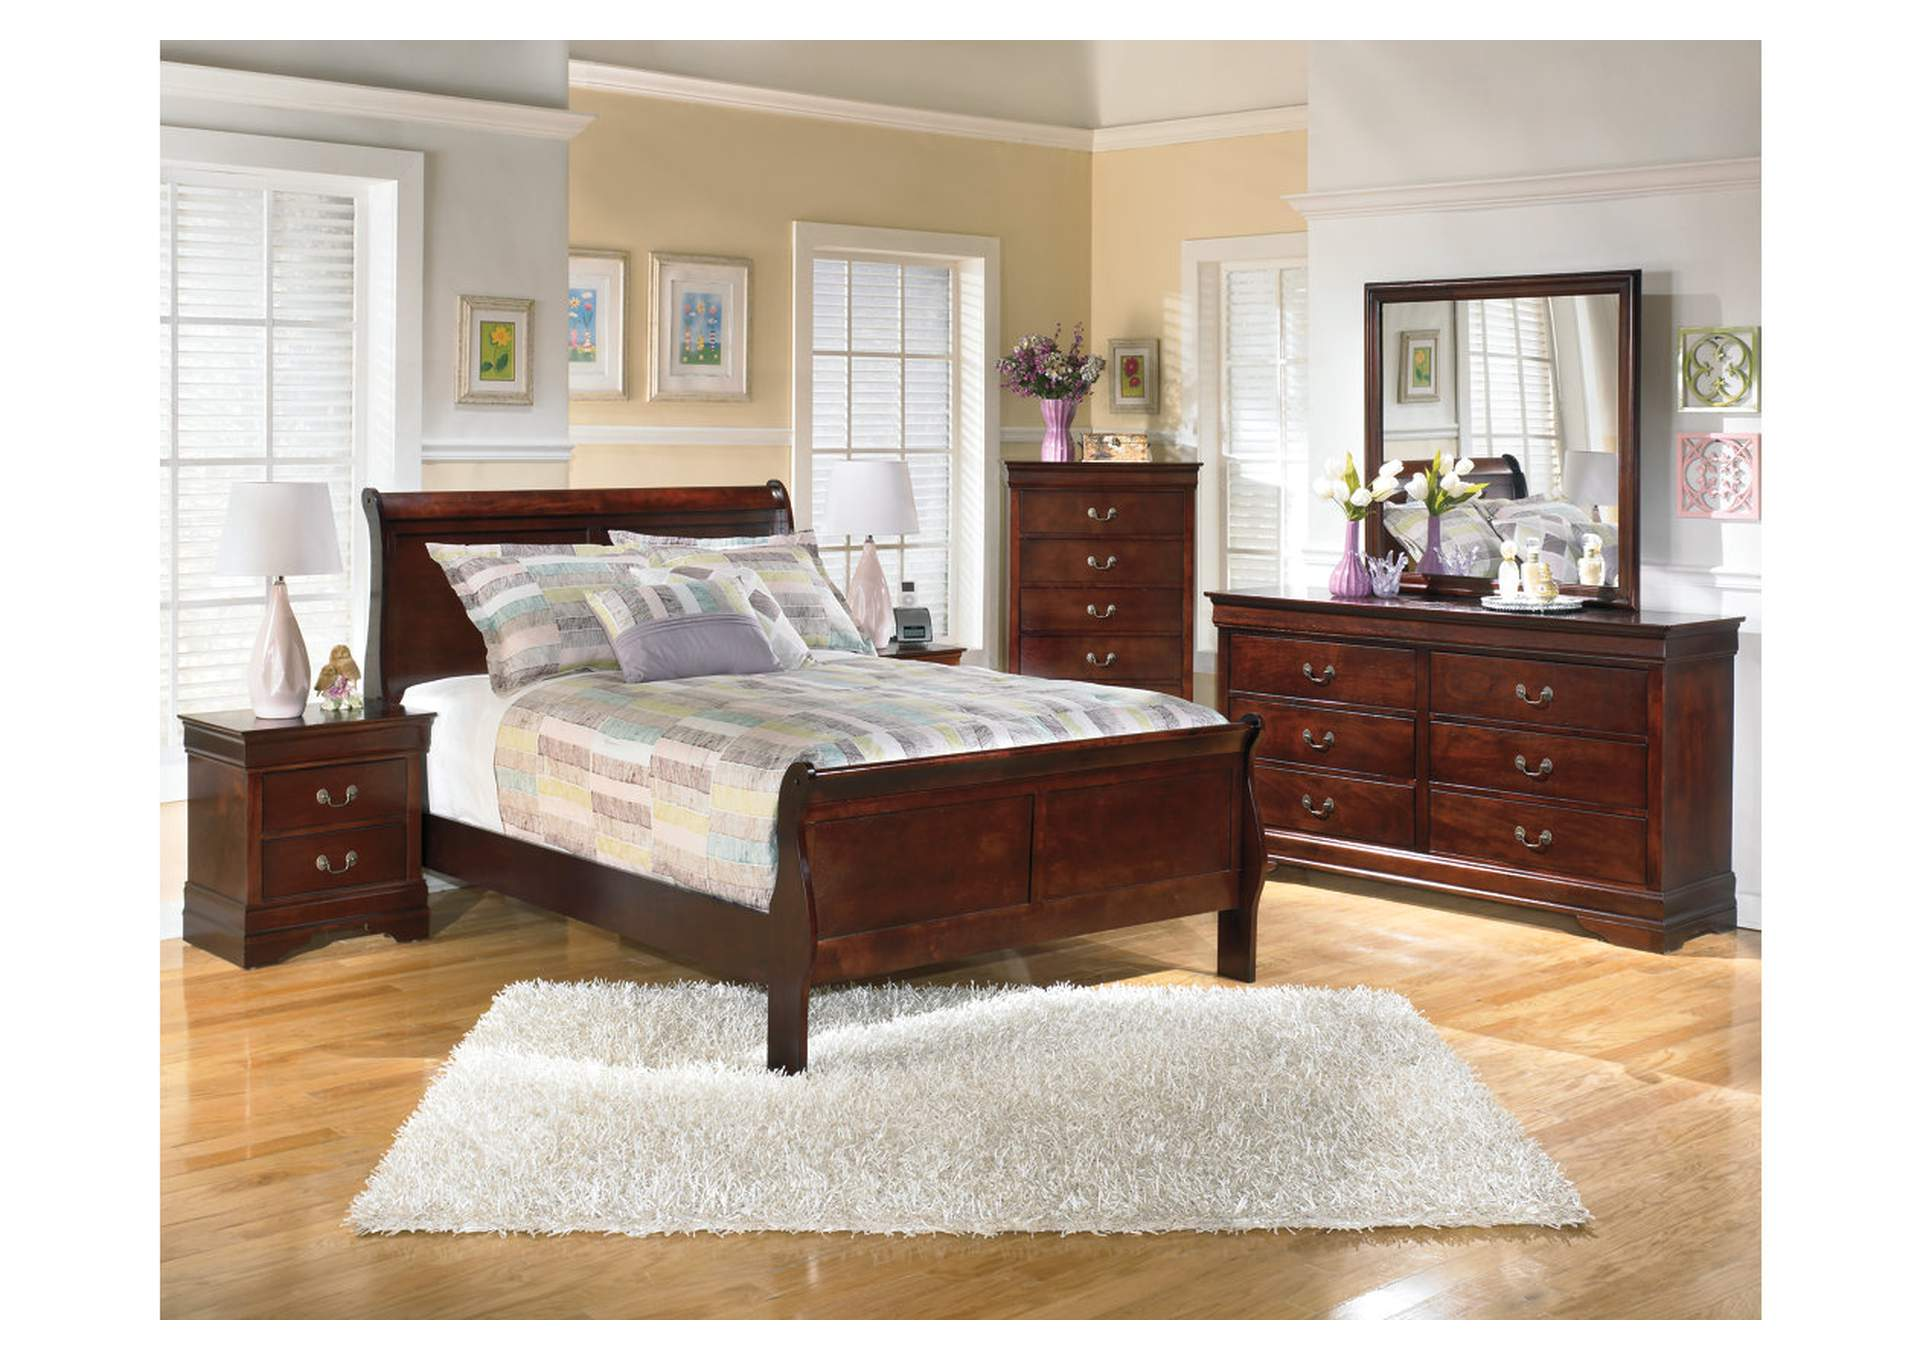 Alisdair Full Sleigh Bed w/Dresser, Mirror, Drawer Chest & 2 Nightstands,Signature Design By Ashley